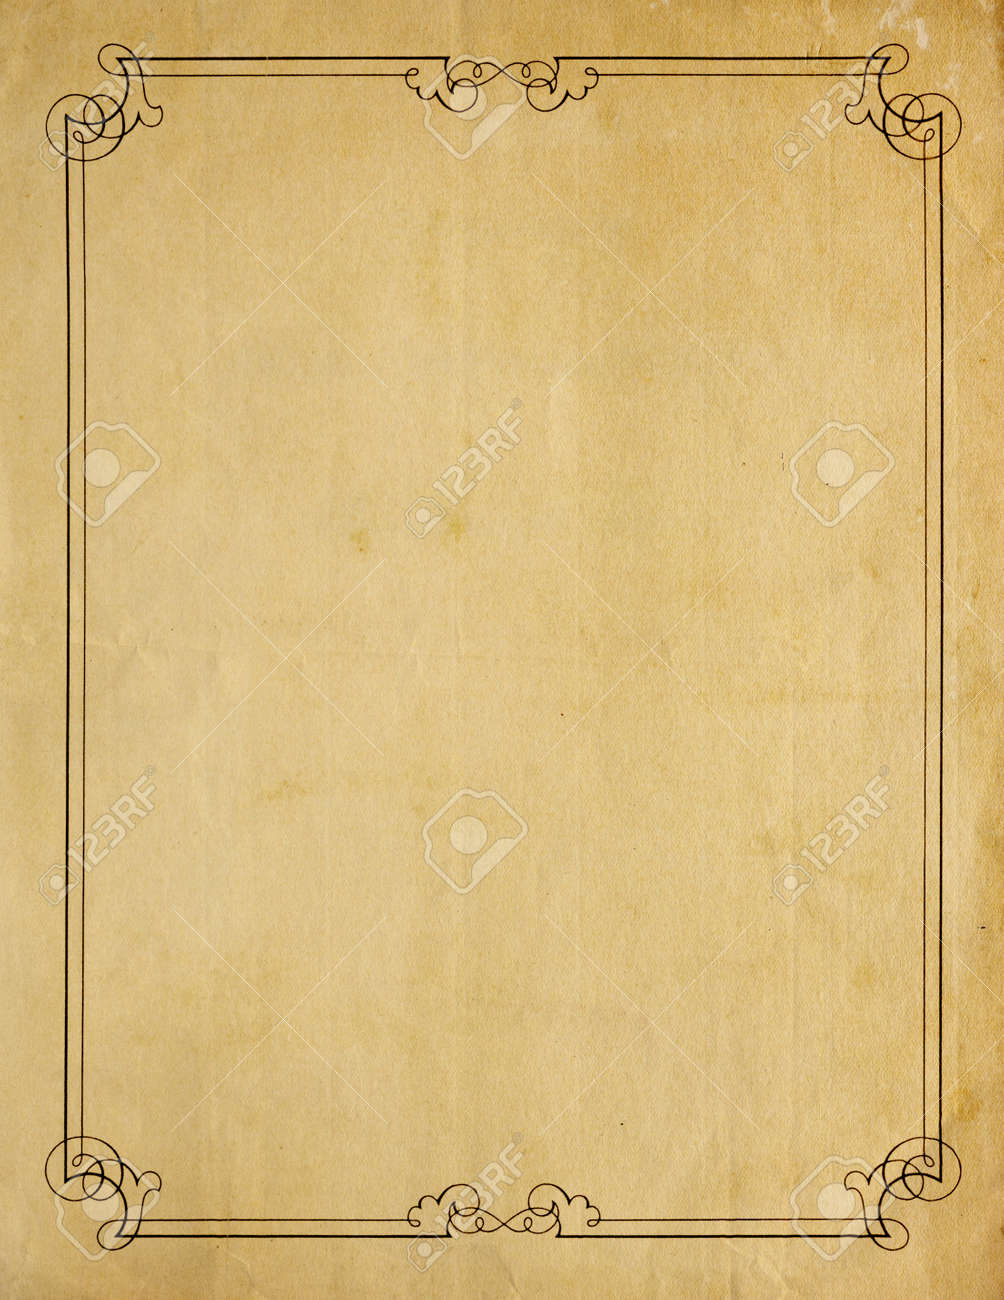 Aged and worn paper with abrasions, and creases and moderately ornate border printed in black ink, but page is otherwise blank with room for text or images. Stock Photo - 8877590